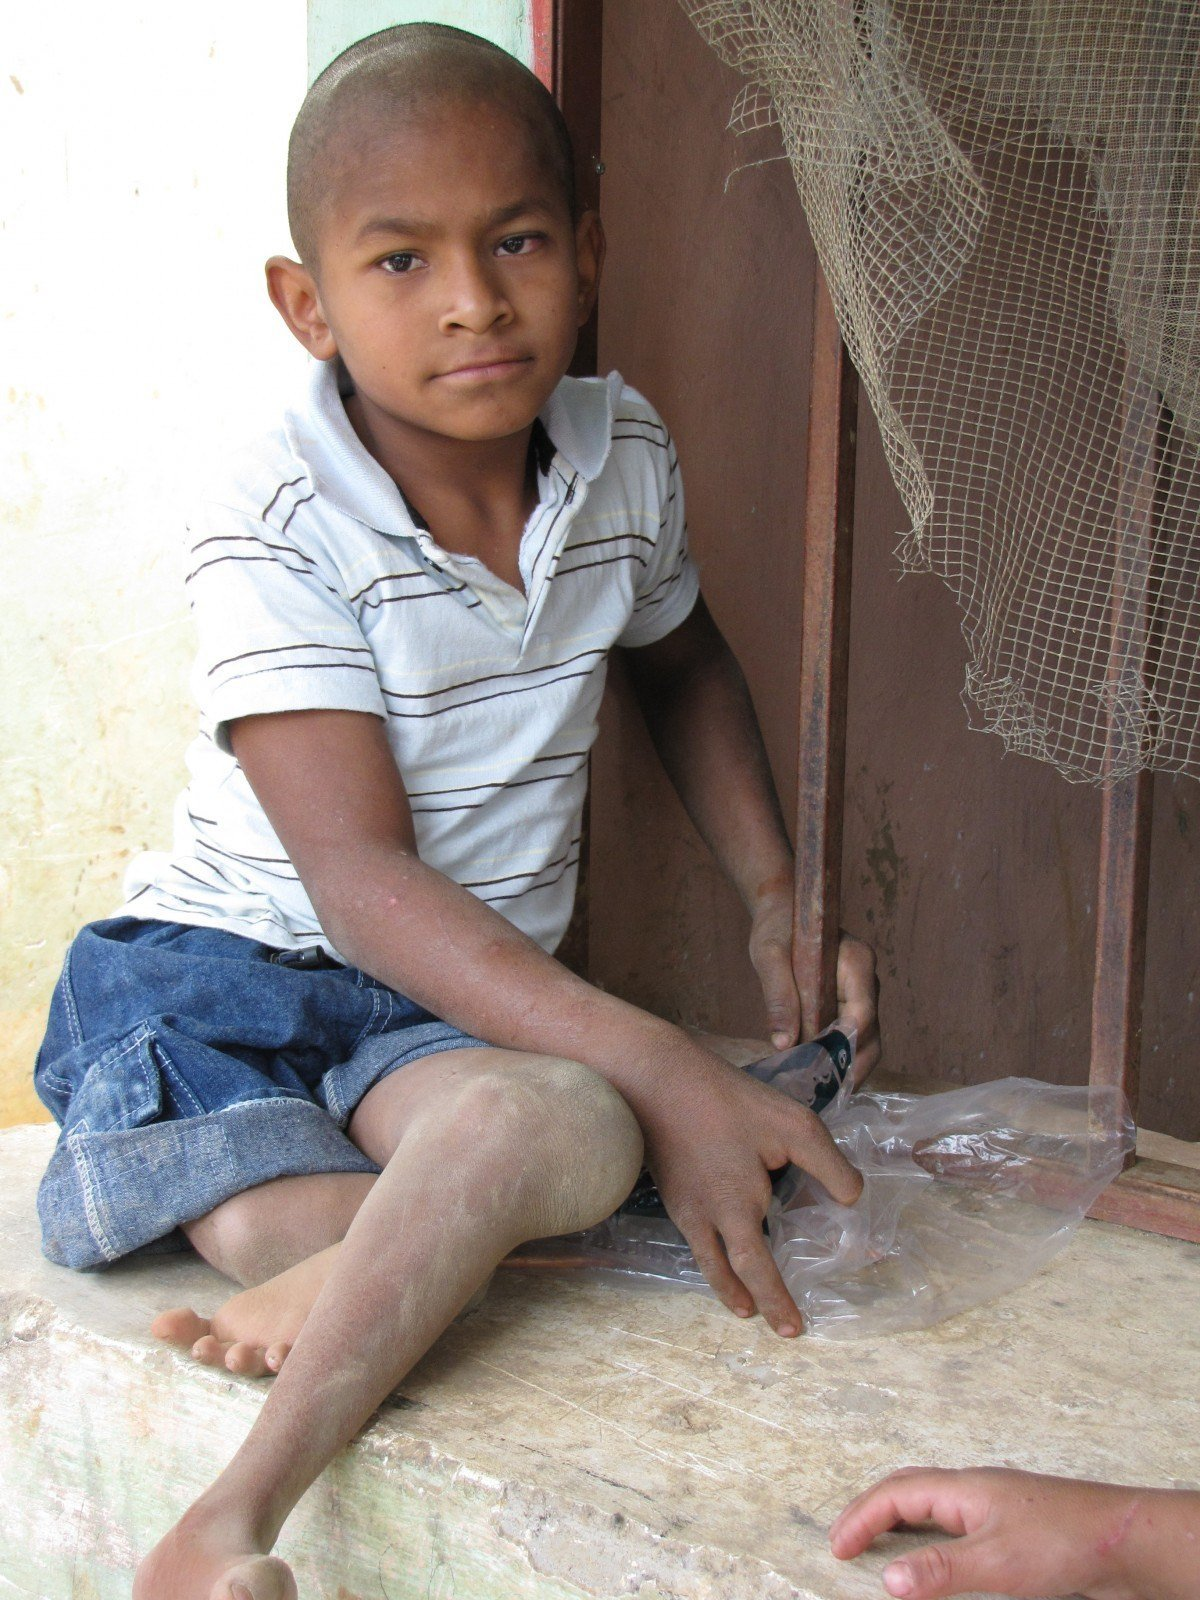 A beggar child in Honduras